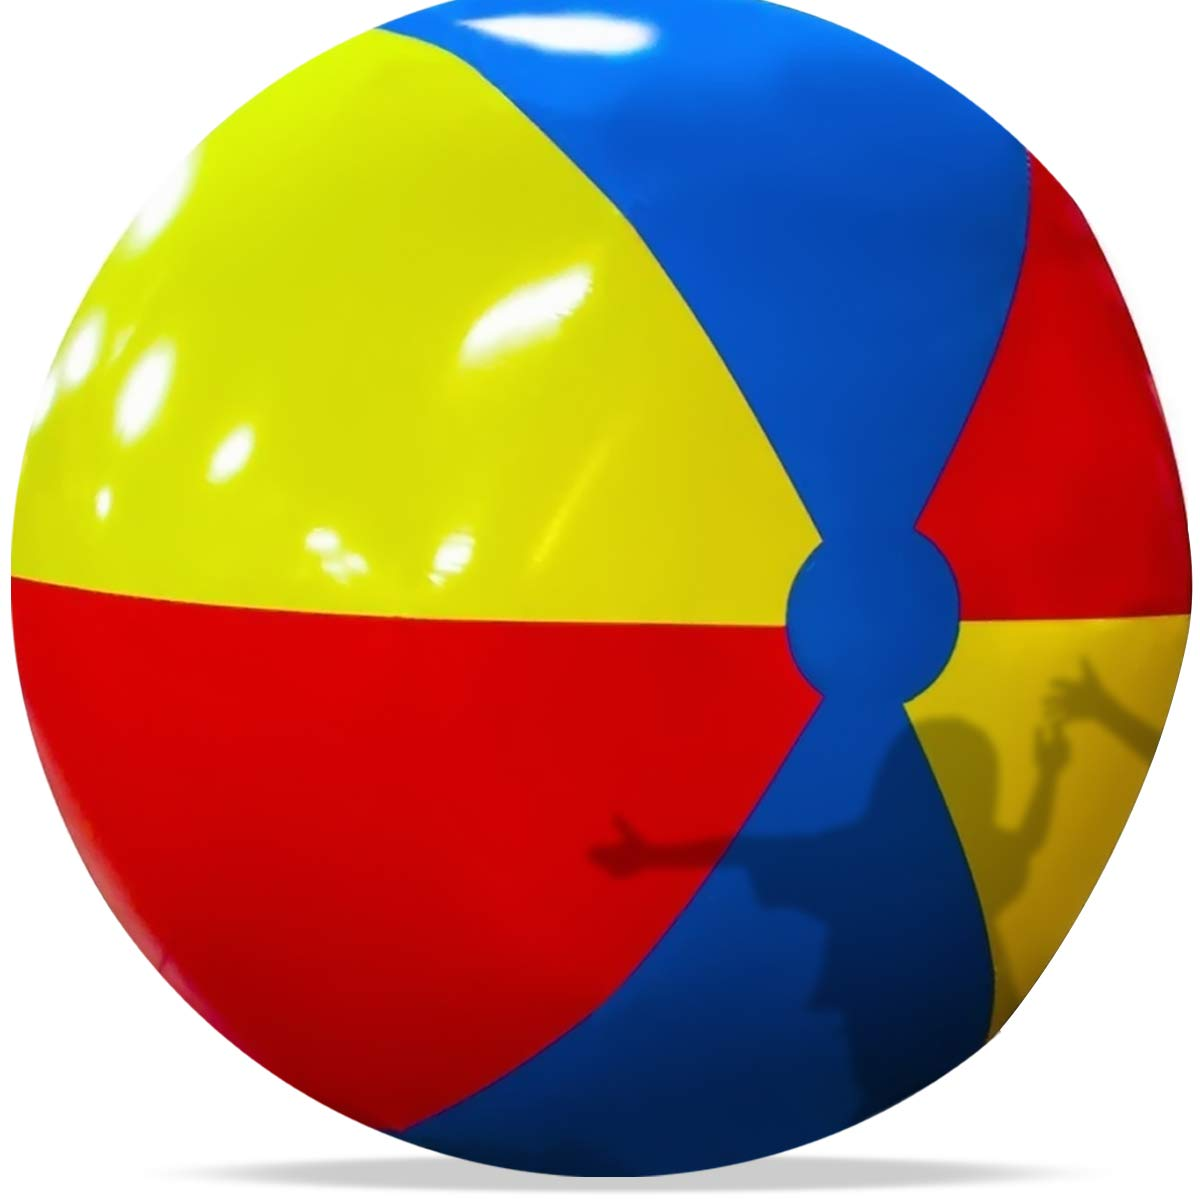 Novelty Place Giant Inflatable Beach Ball, Pool Toy for Kids & Adults - Jumbo Size 5 Feet (60 inches)